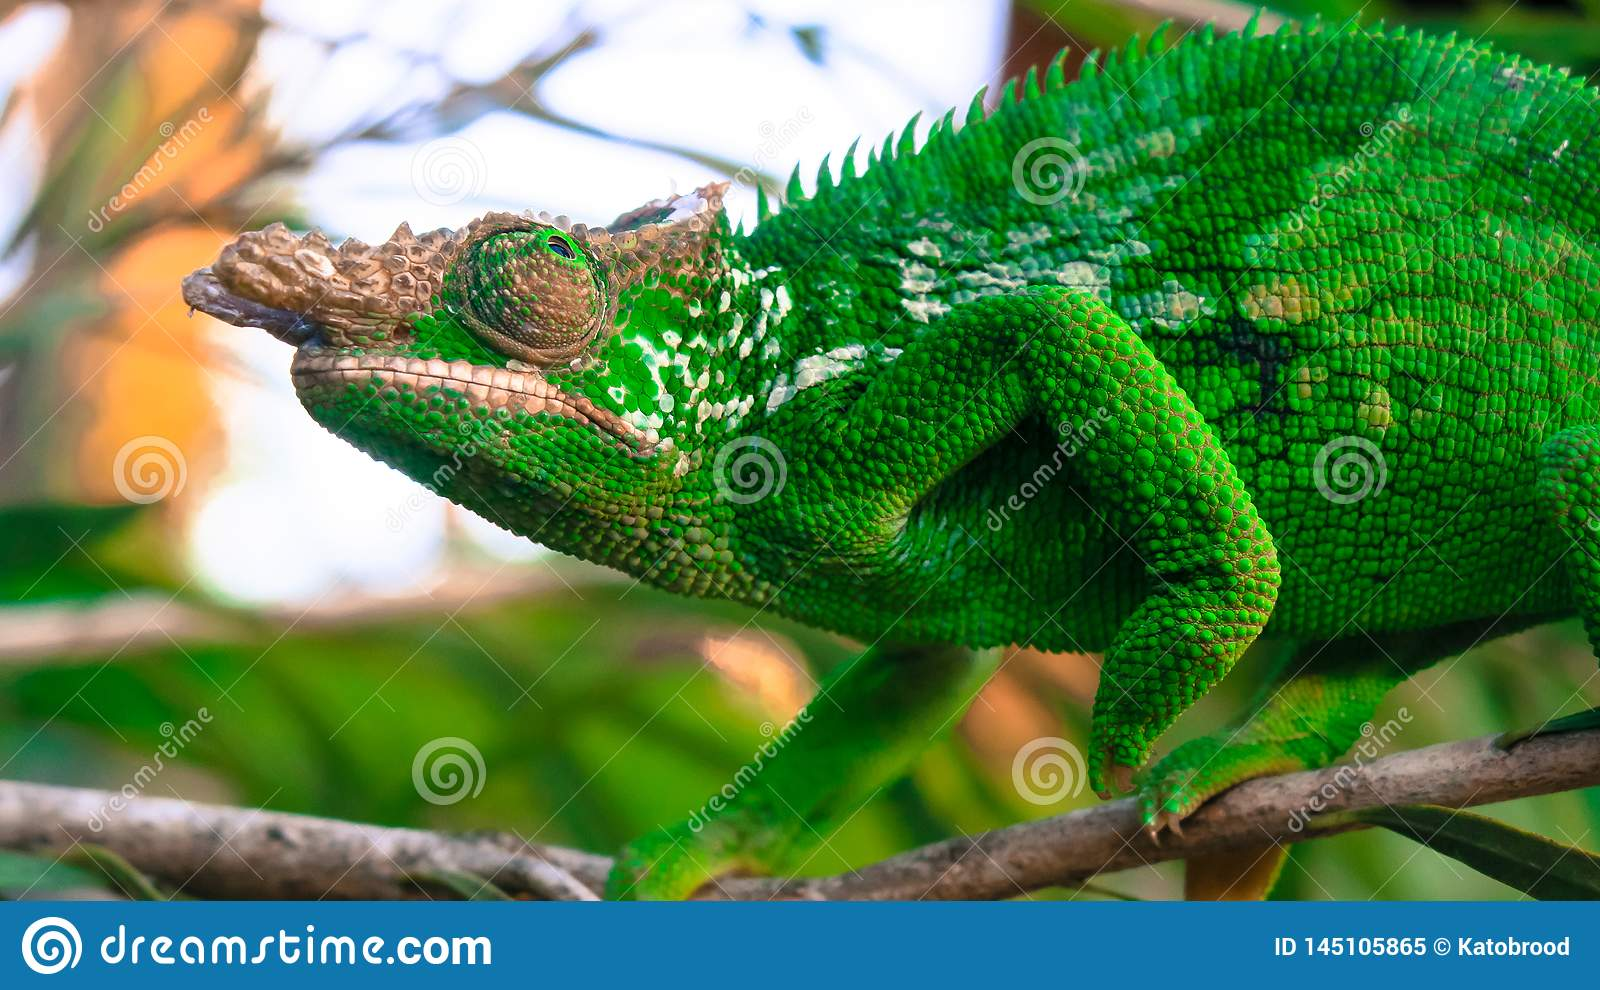 West Usambara two-horned chameleon or West Usambara blade-horned chameleon on stem of branch.